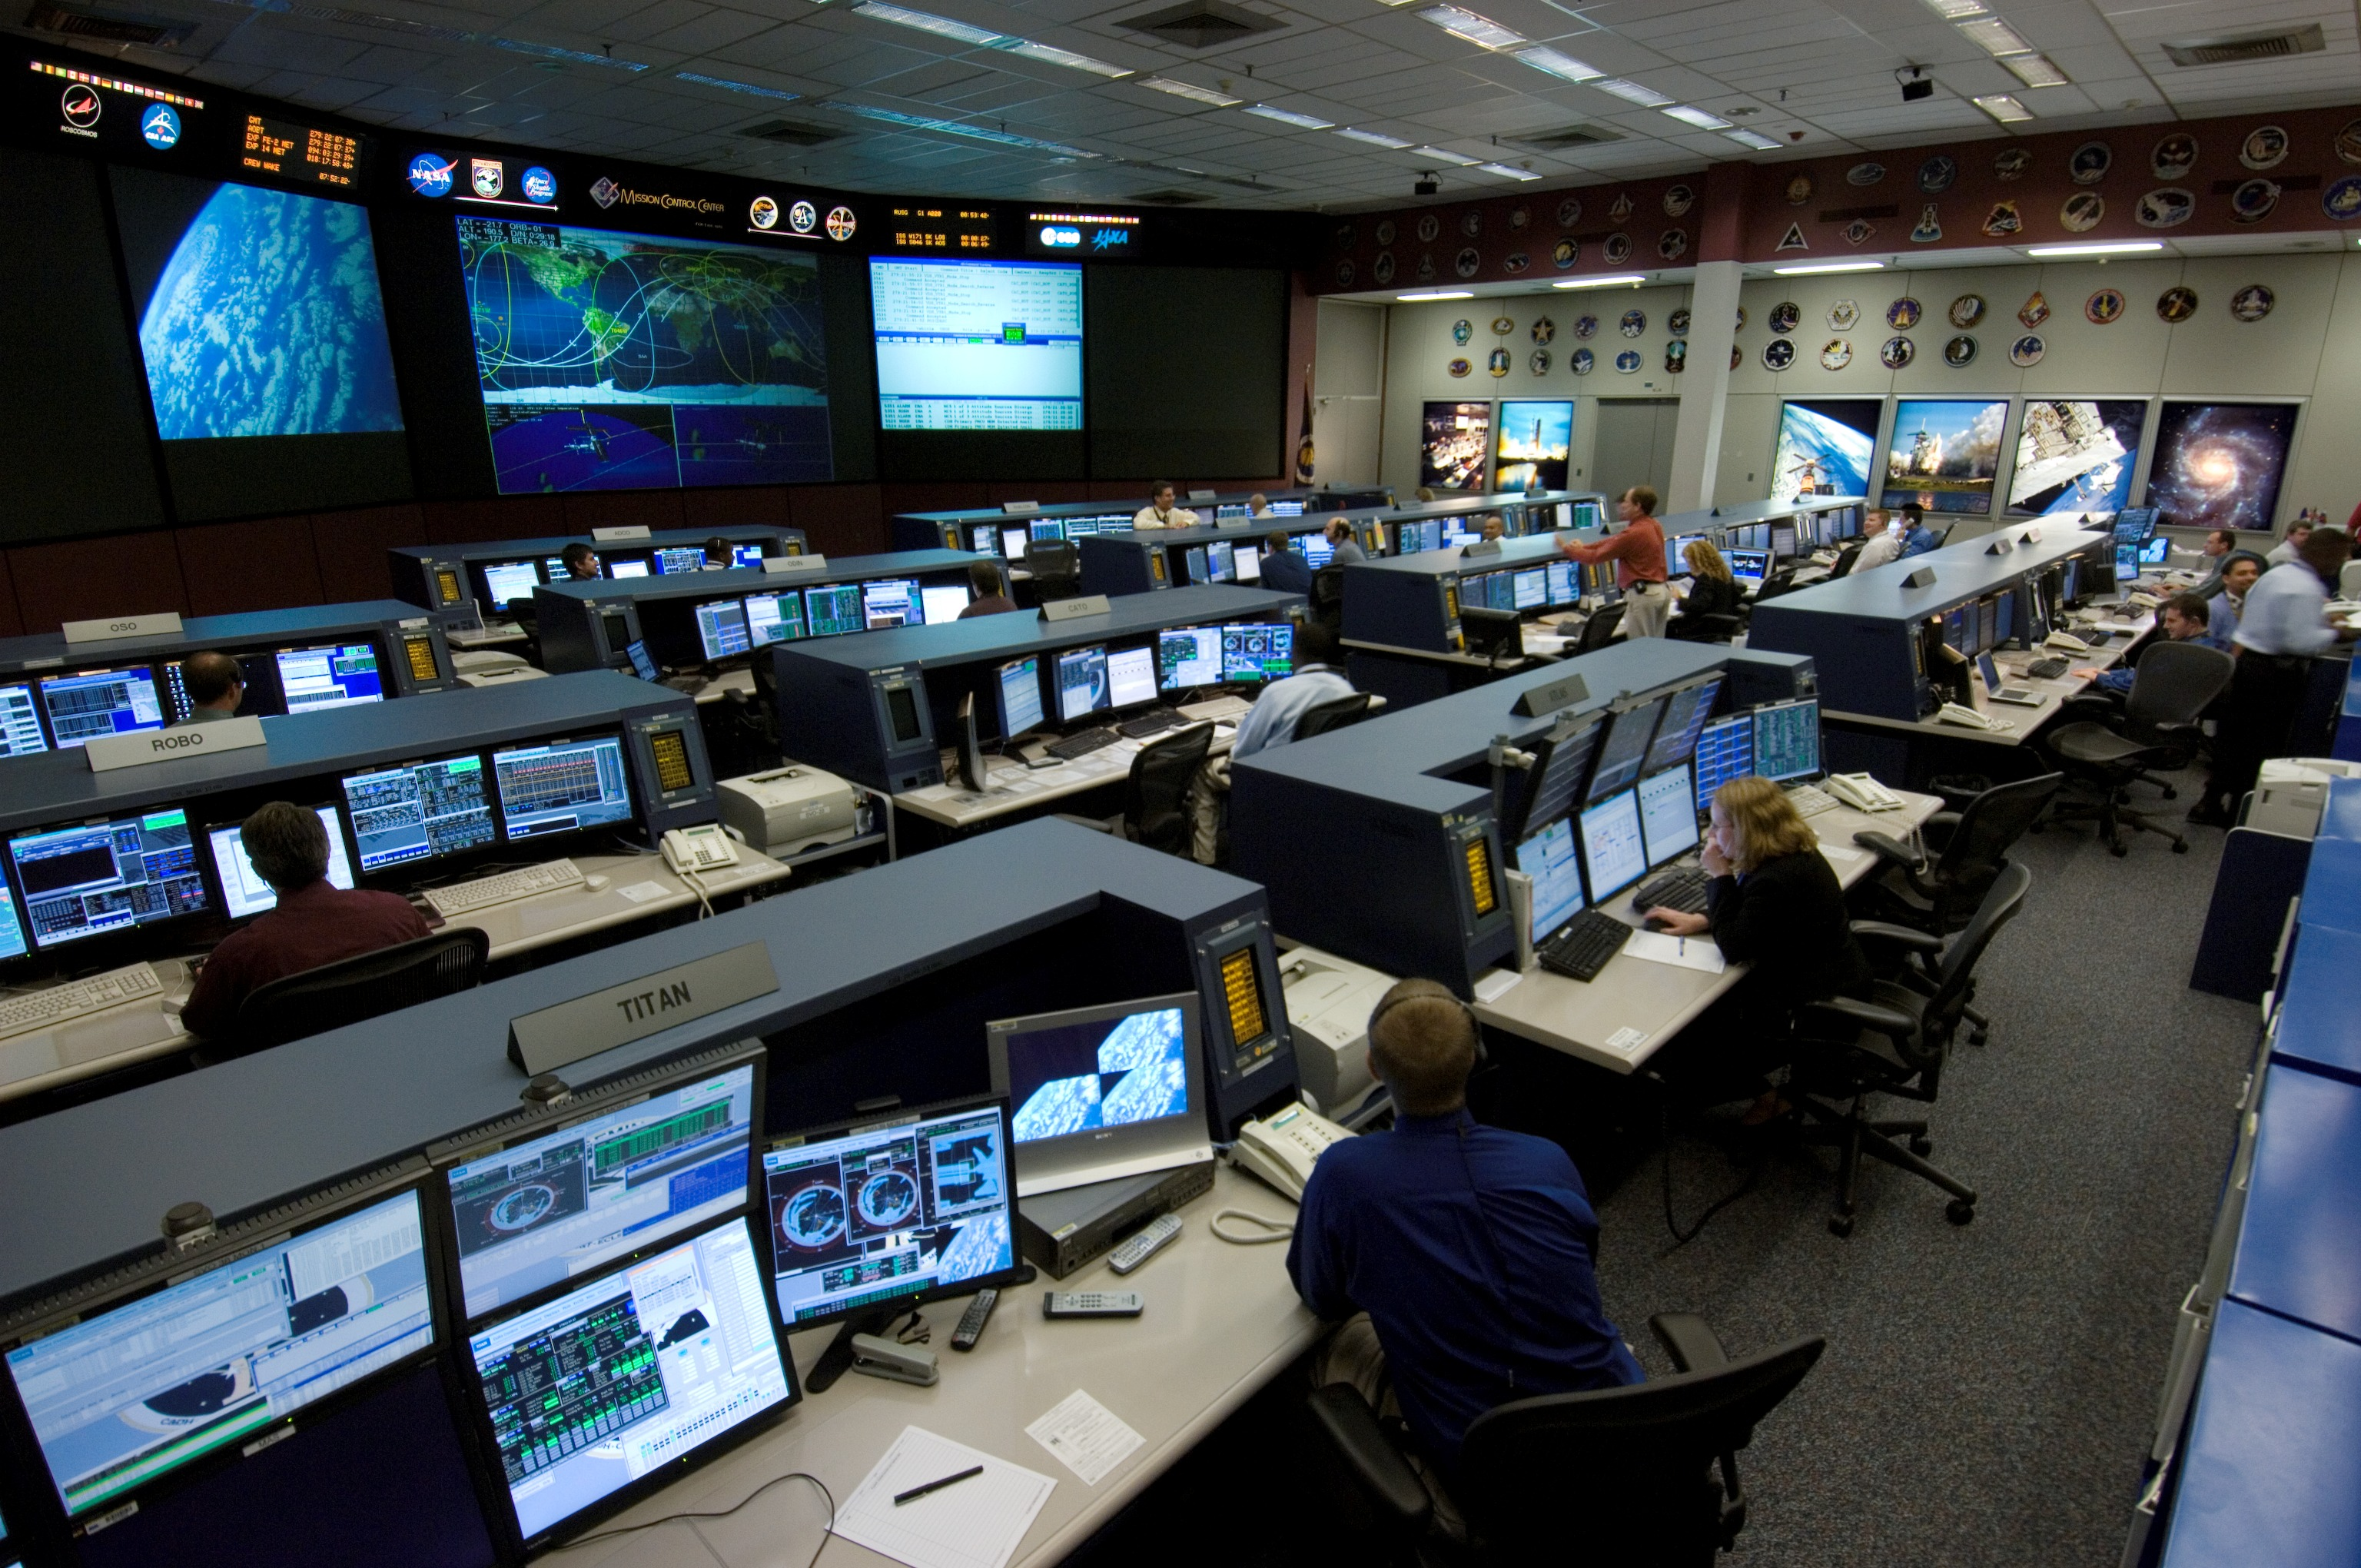 international security information center: